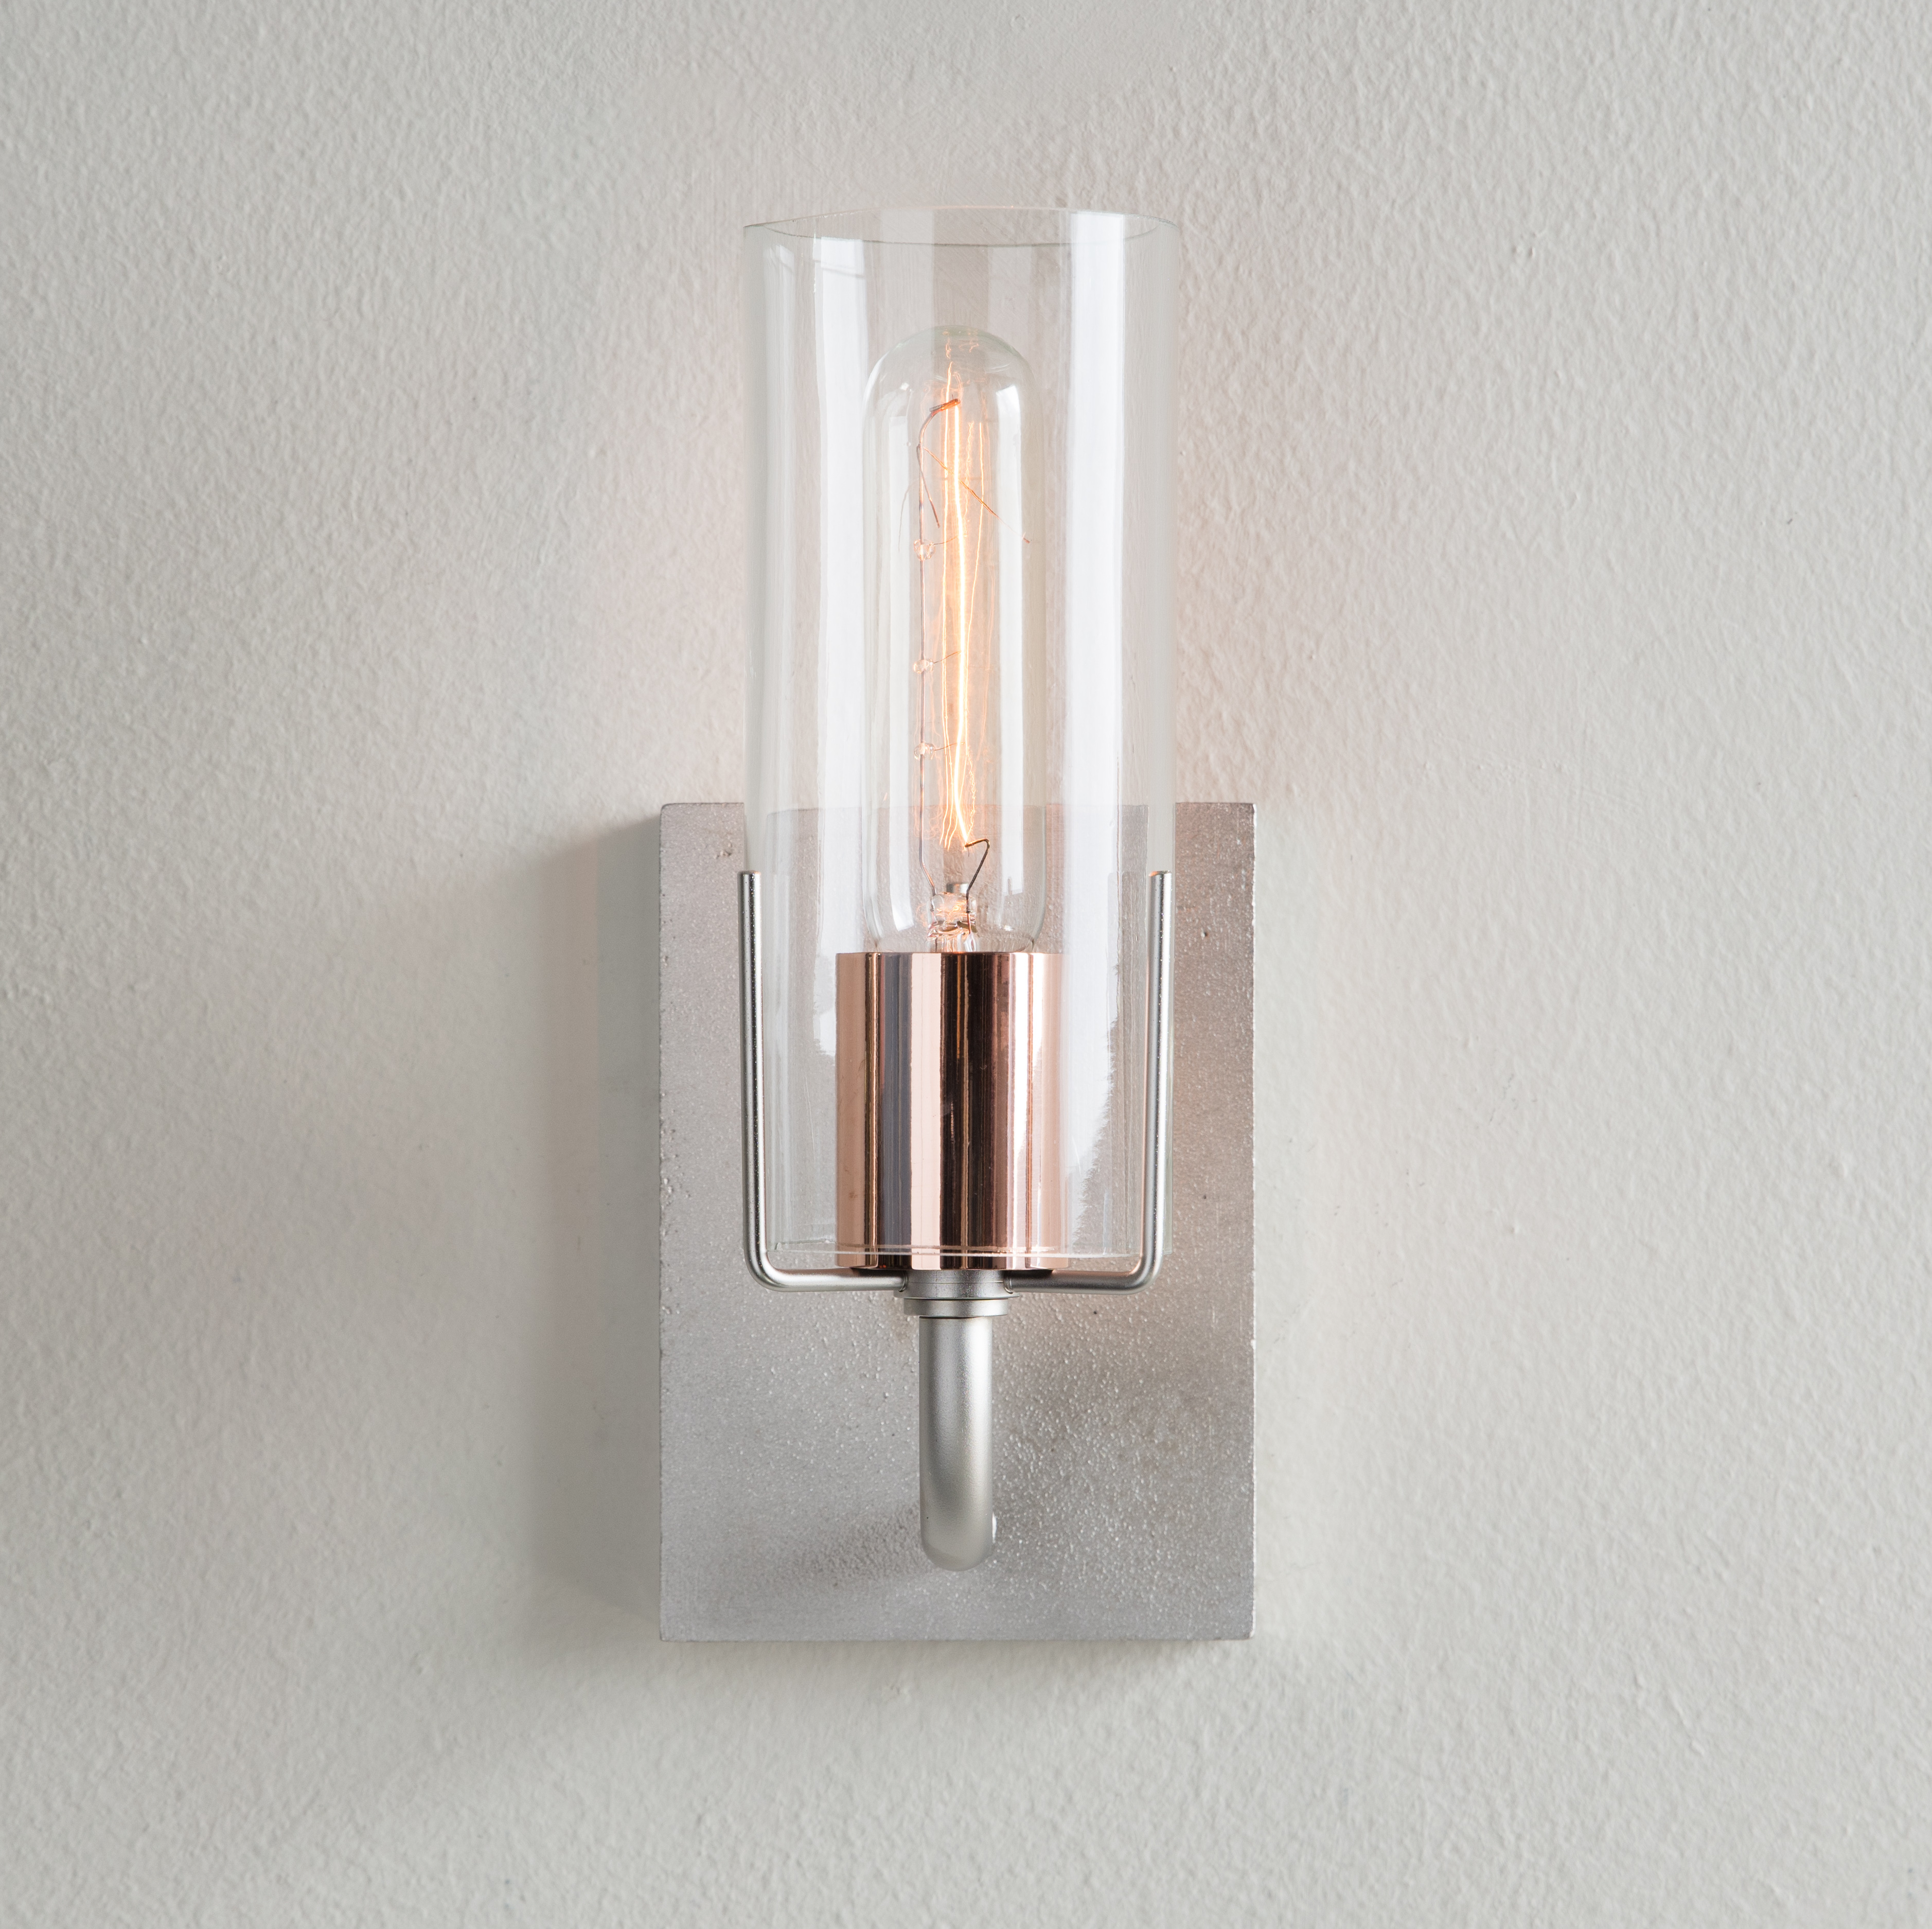 Evergreen Sconce, brushed nickel with copper sleeve